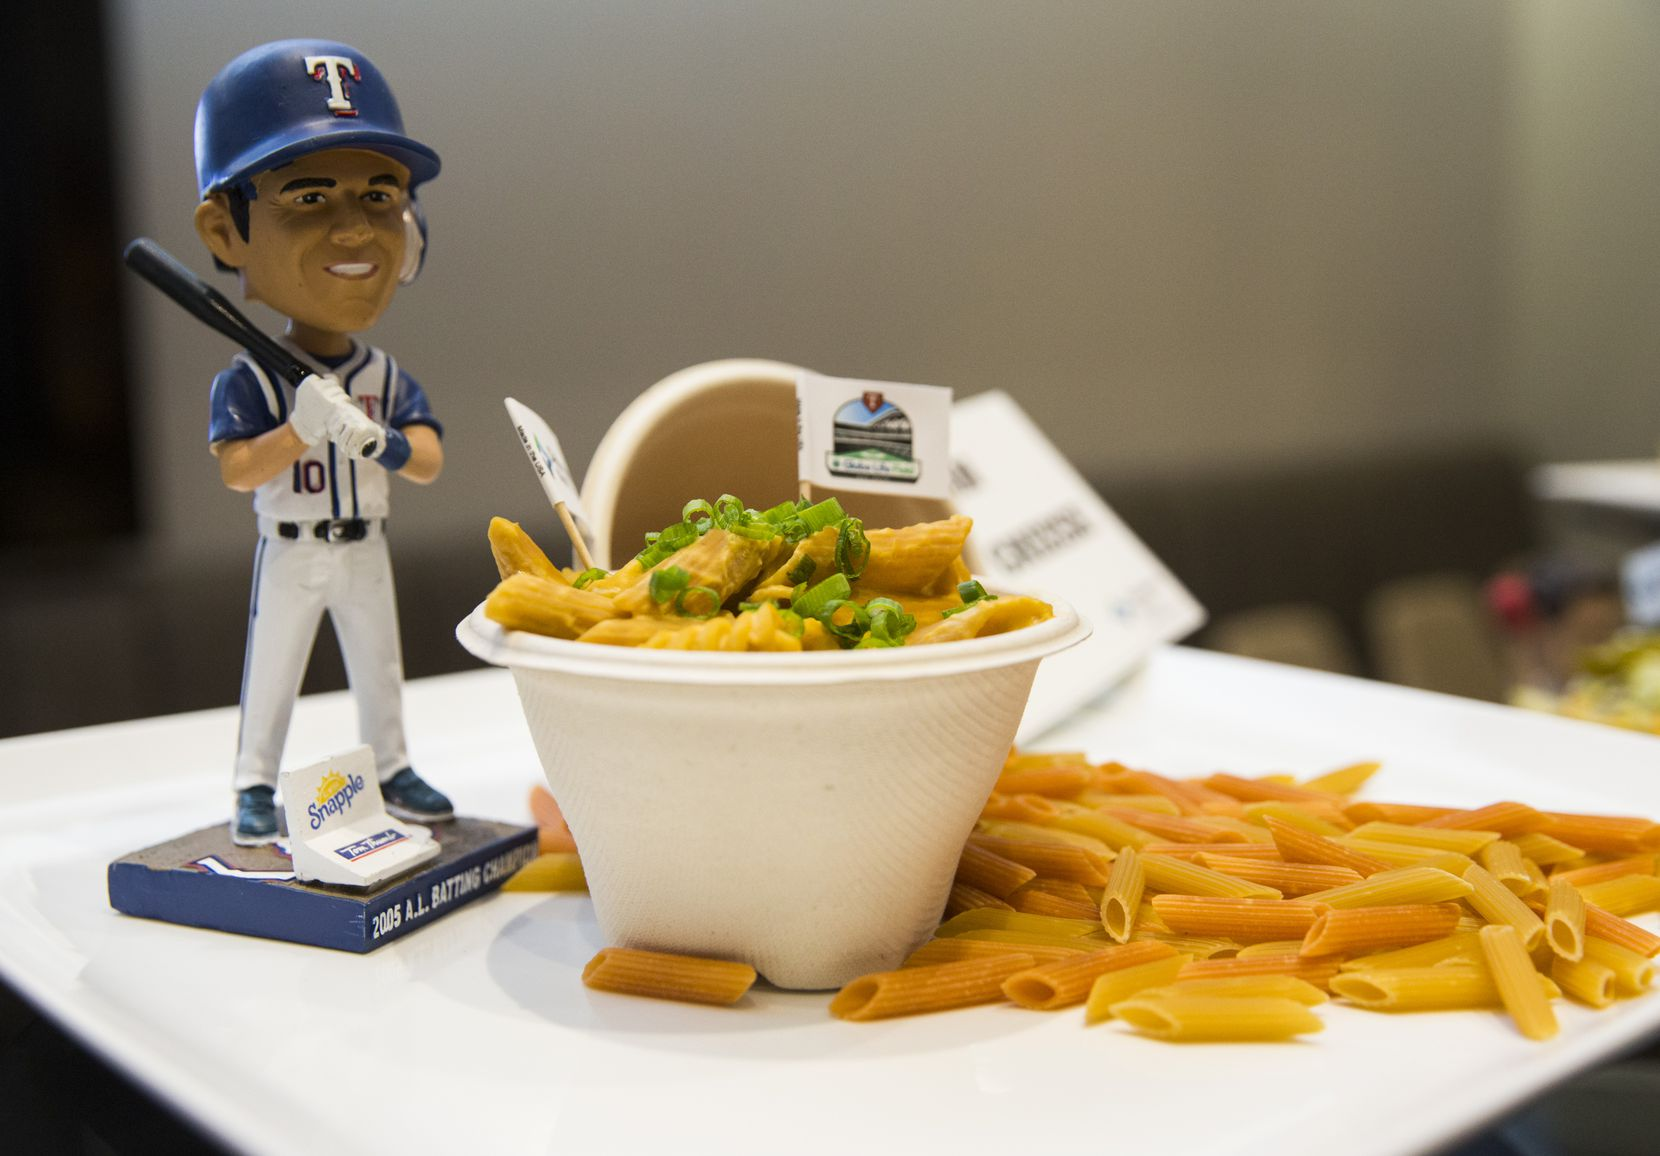 Vegan mac and cheese made the cut at for the 2020 concessions at the Rangers' new ballpark, Globe Life Field.